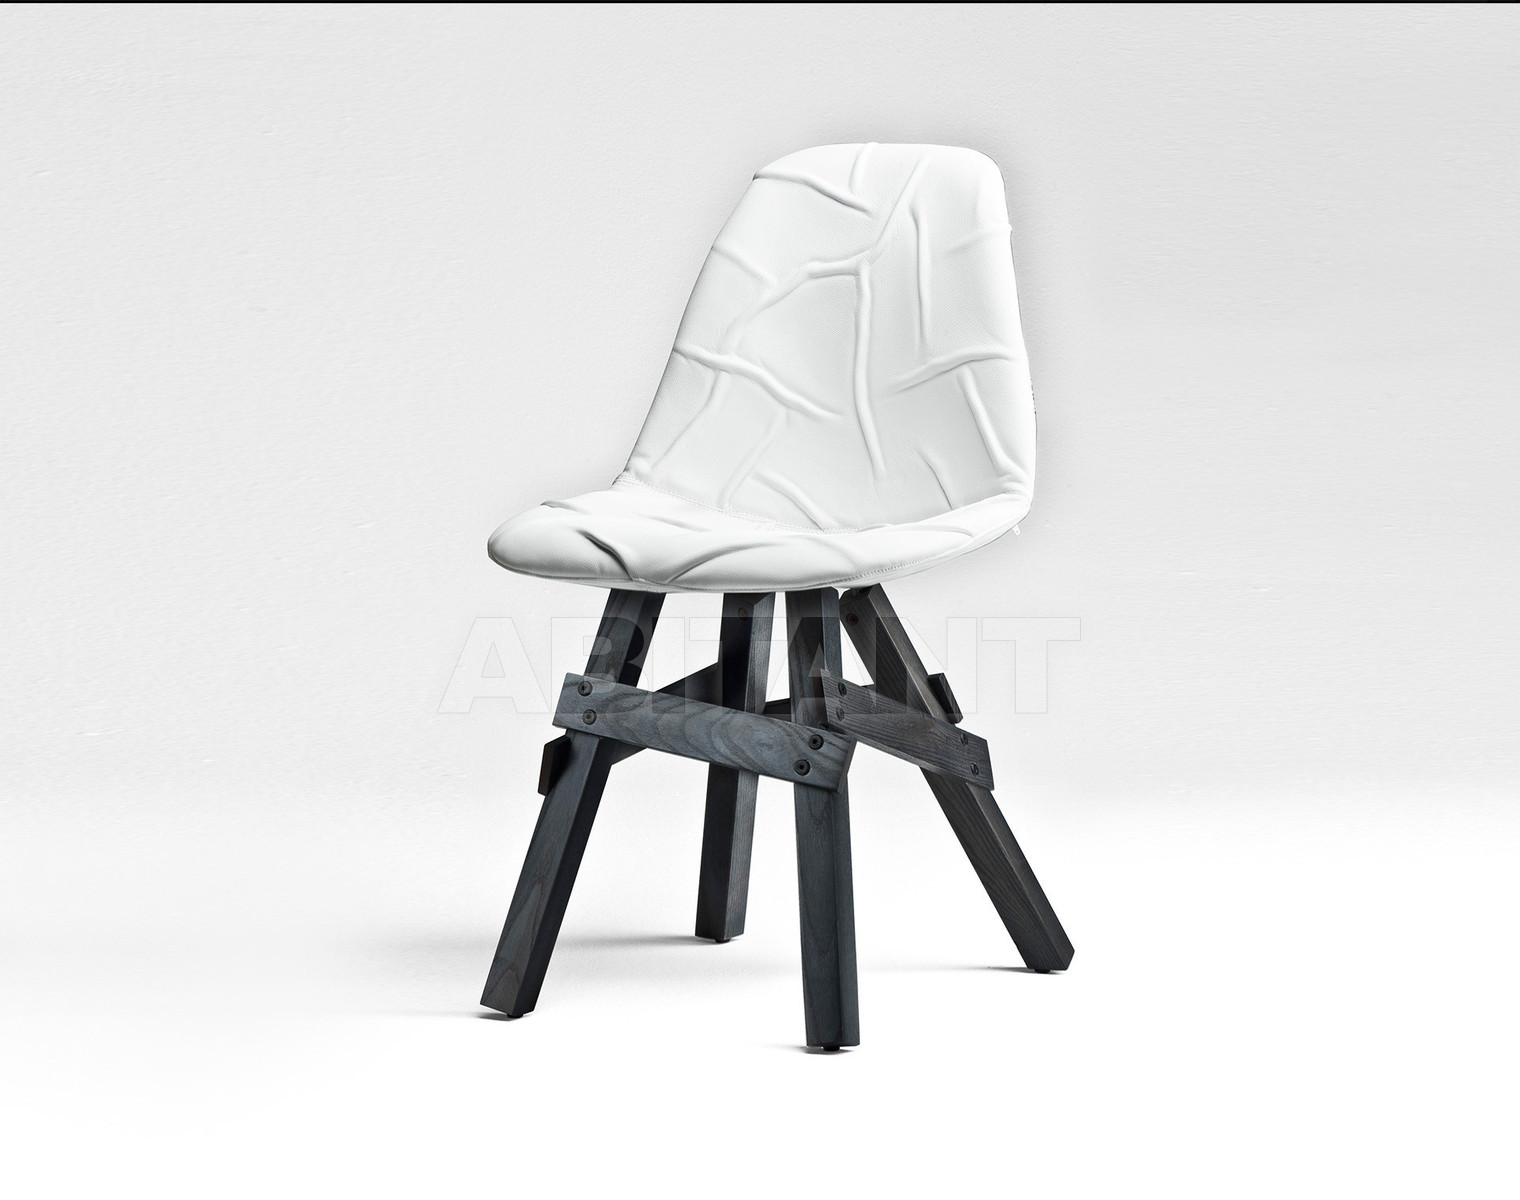 Купить Стул Kubikoff Sander Mulder ICON'Pop'Chair 2